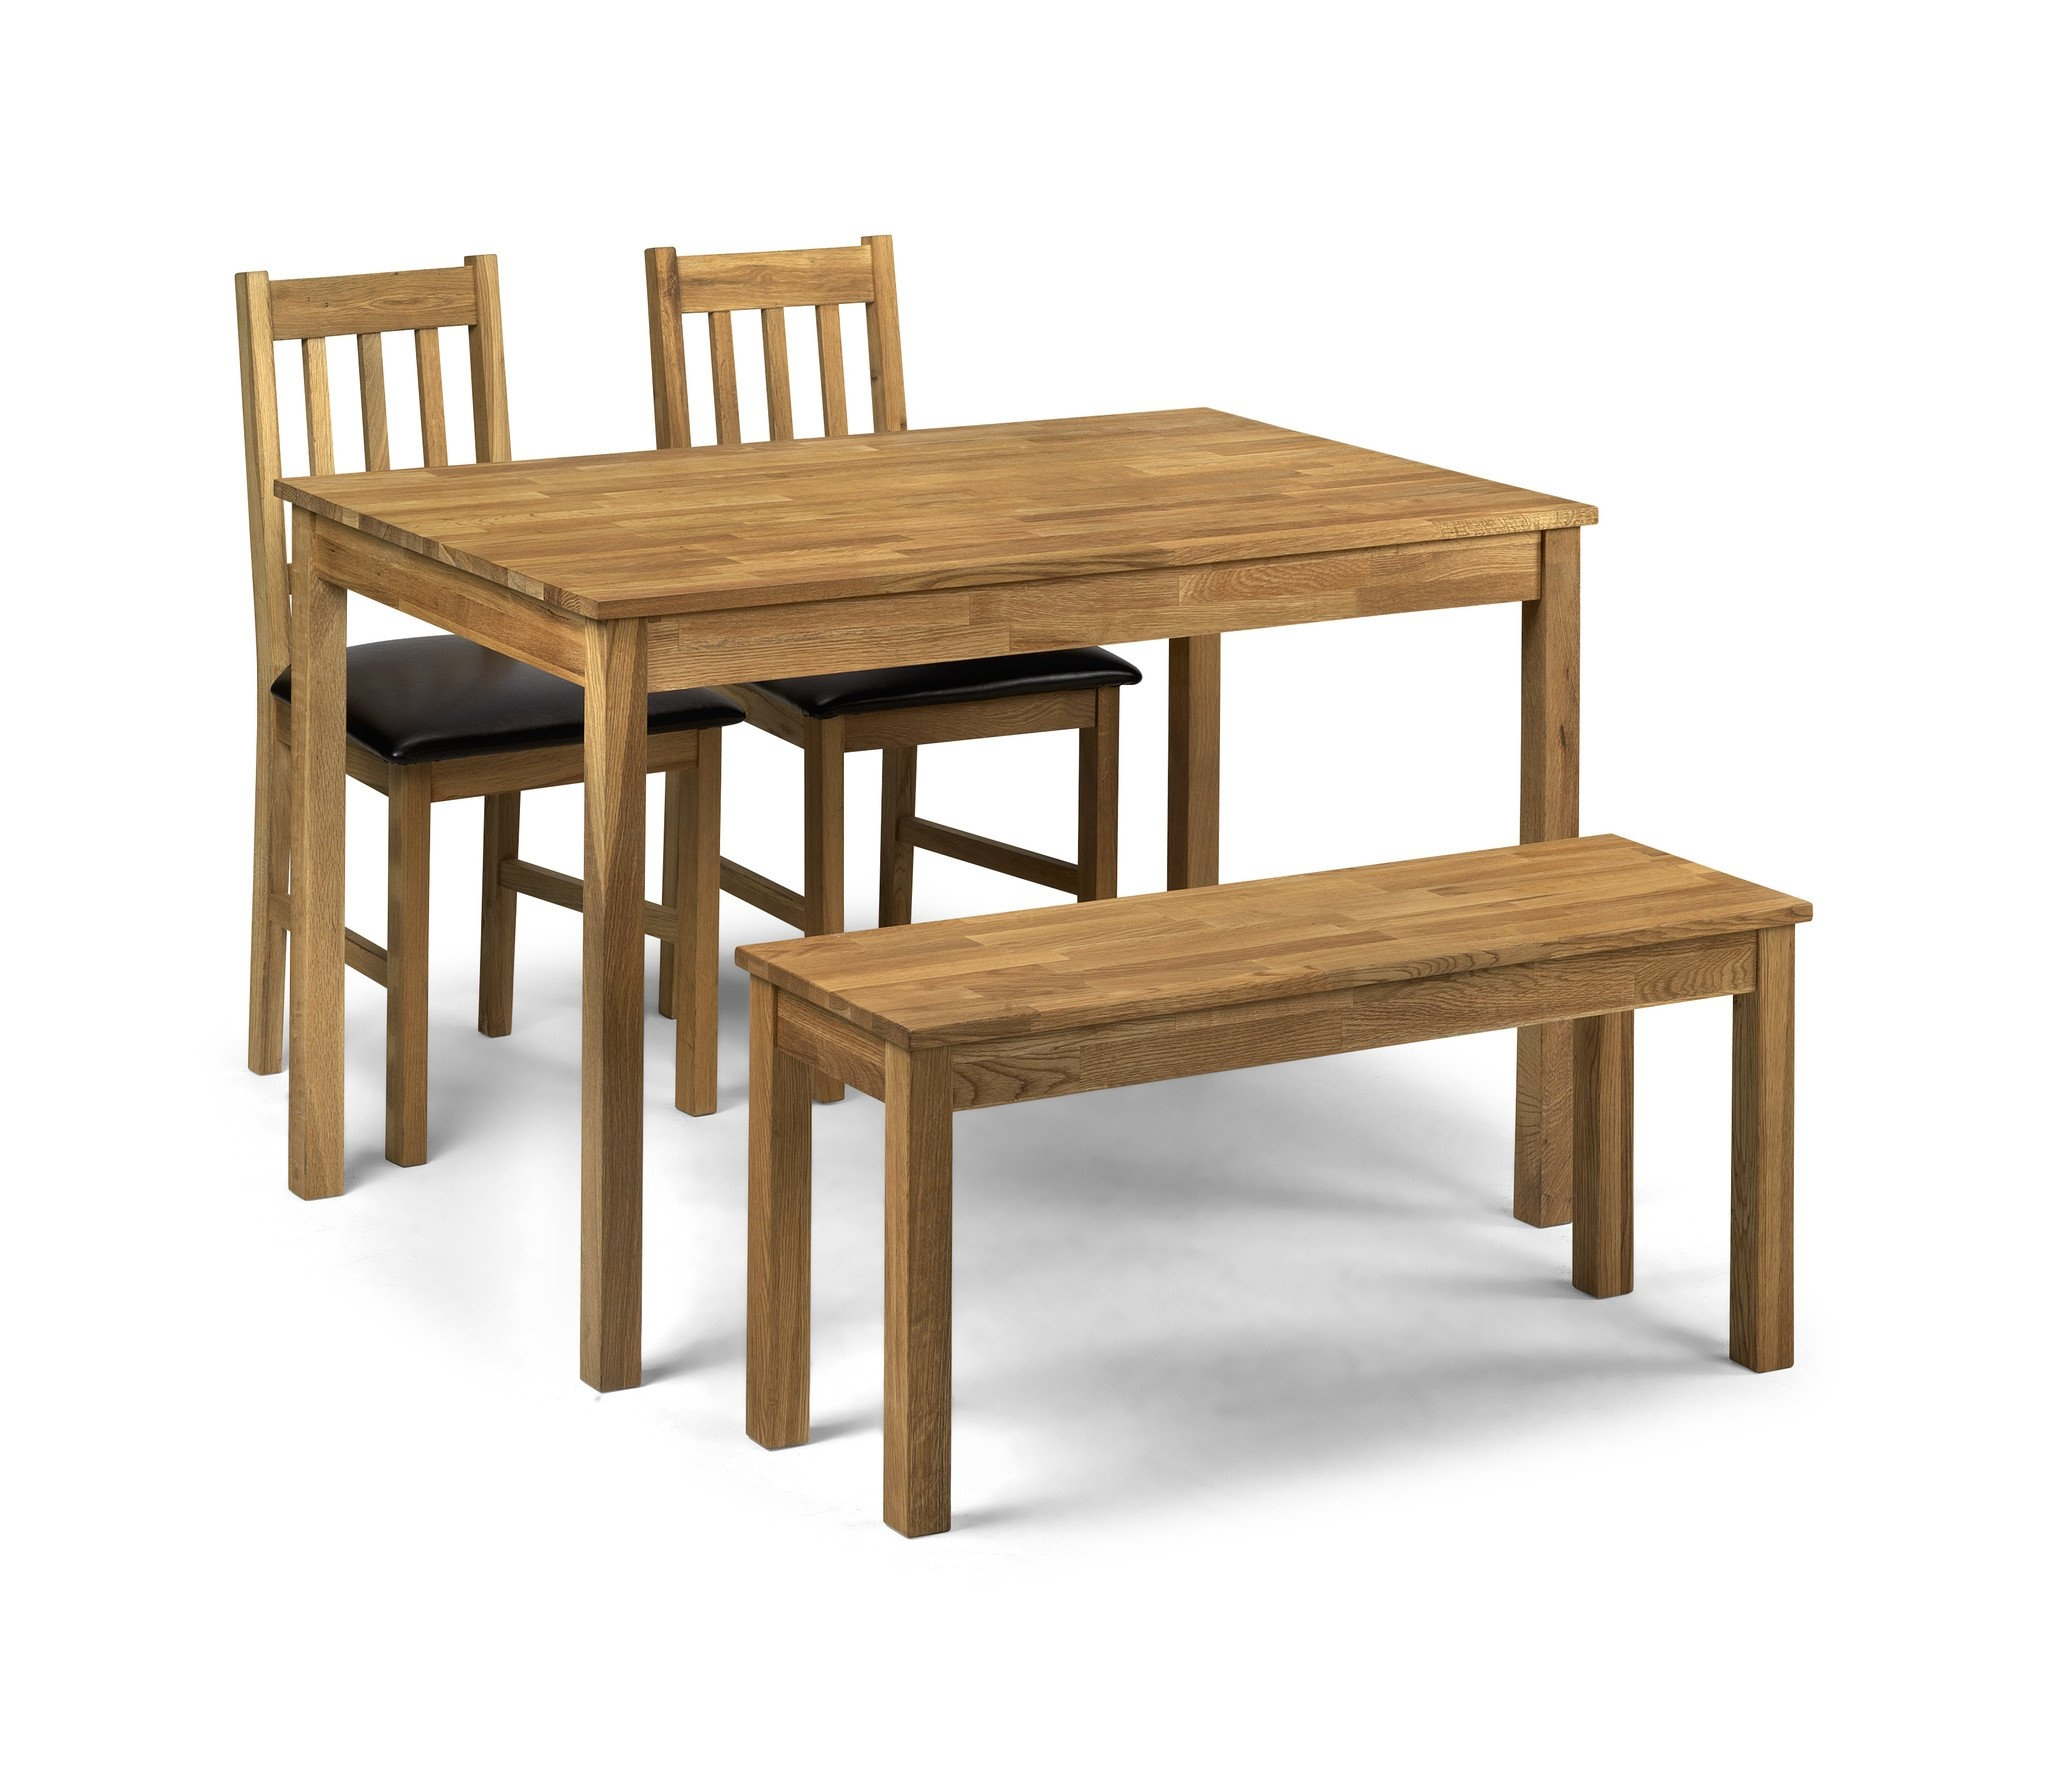 Dining room table bench Farmhouse Abdabs Furniture Coxmoor Oak Dining Table Bench Set Visual Hunt Dining Table With Bench Visual Hunt